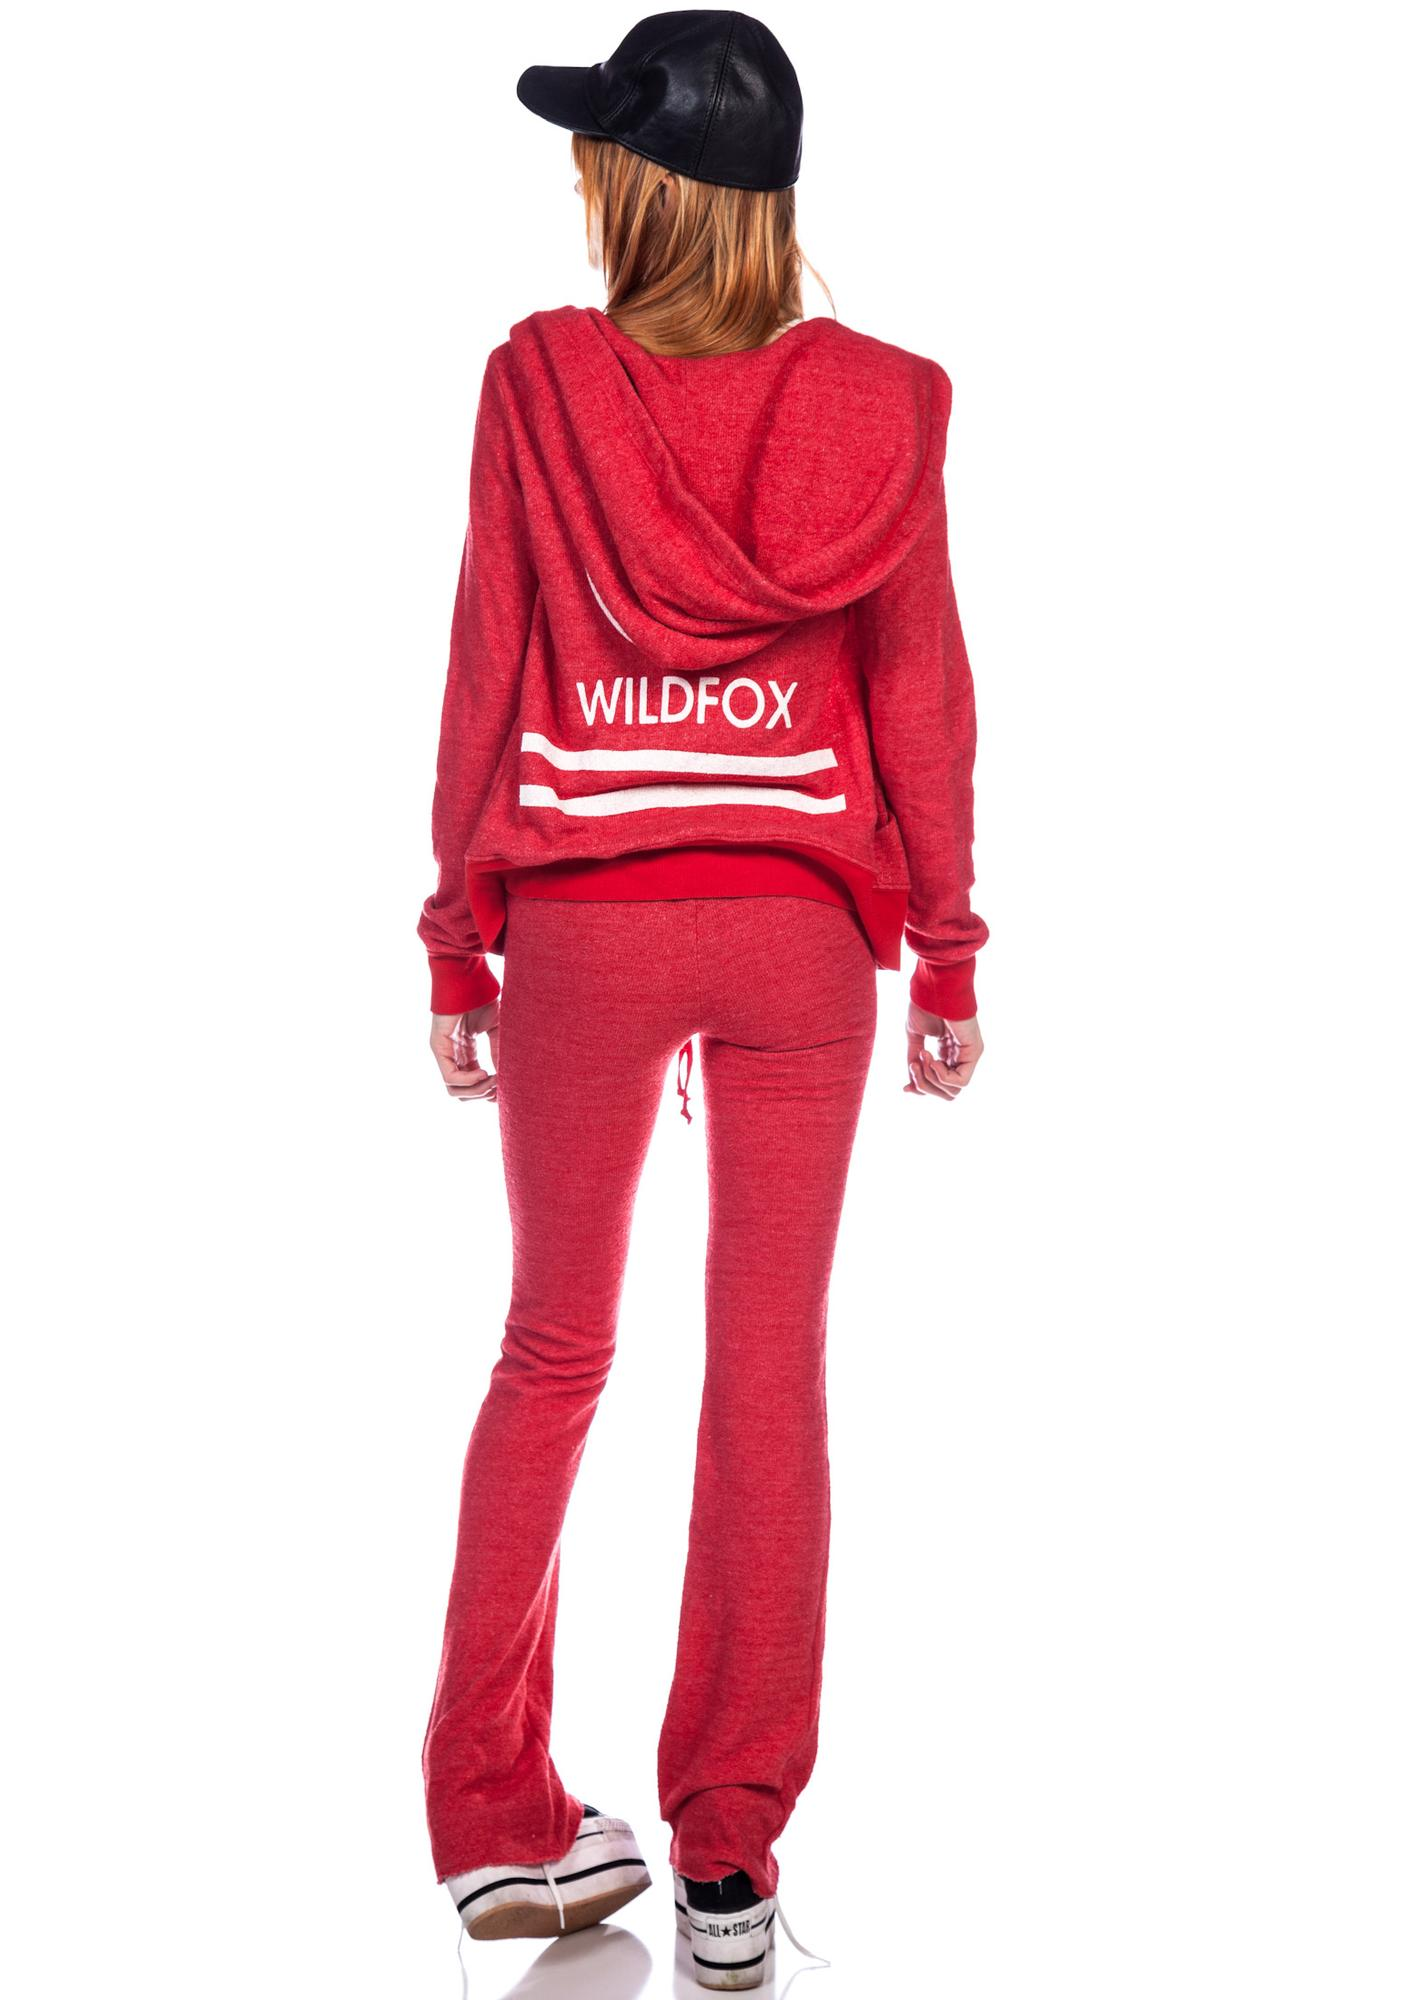 Wildfox Couture Wildfox Cruise Terry Track Suit Pants